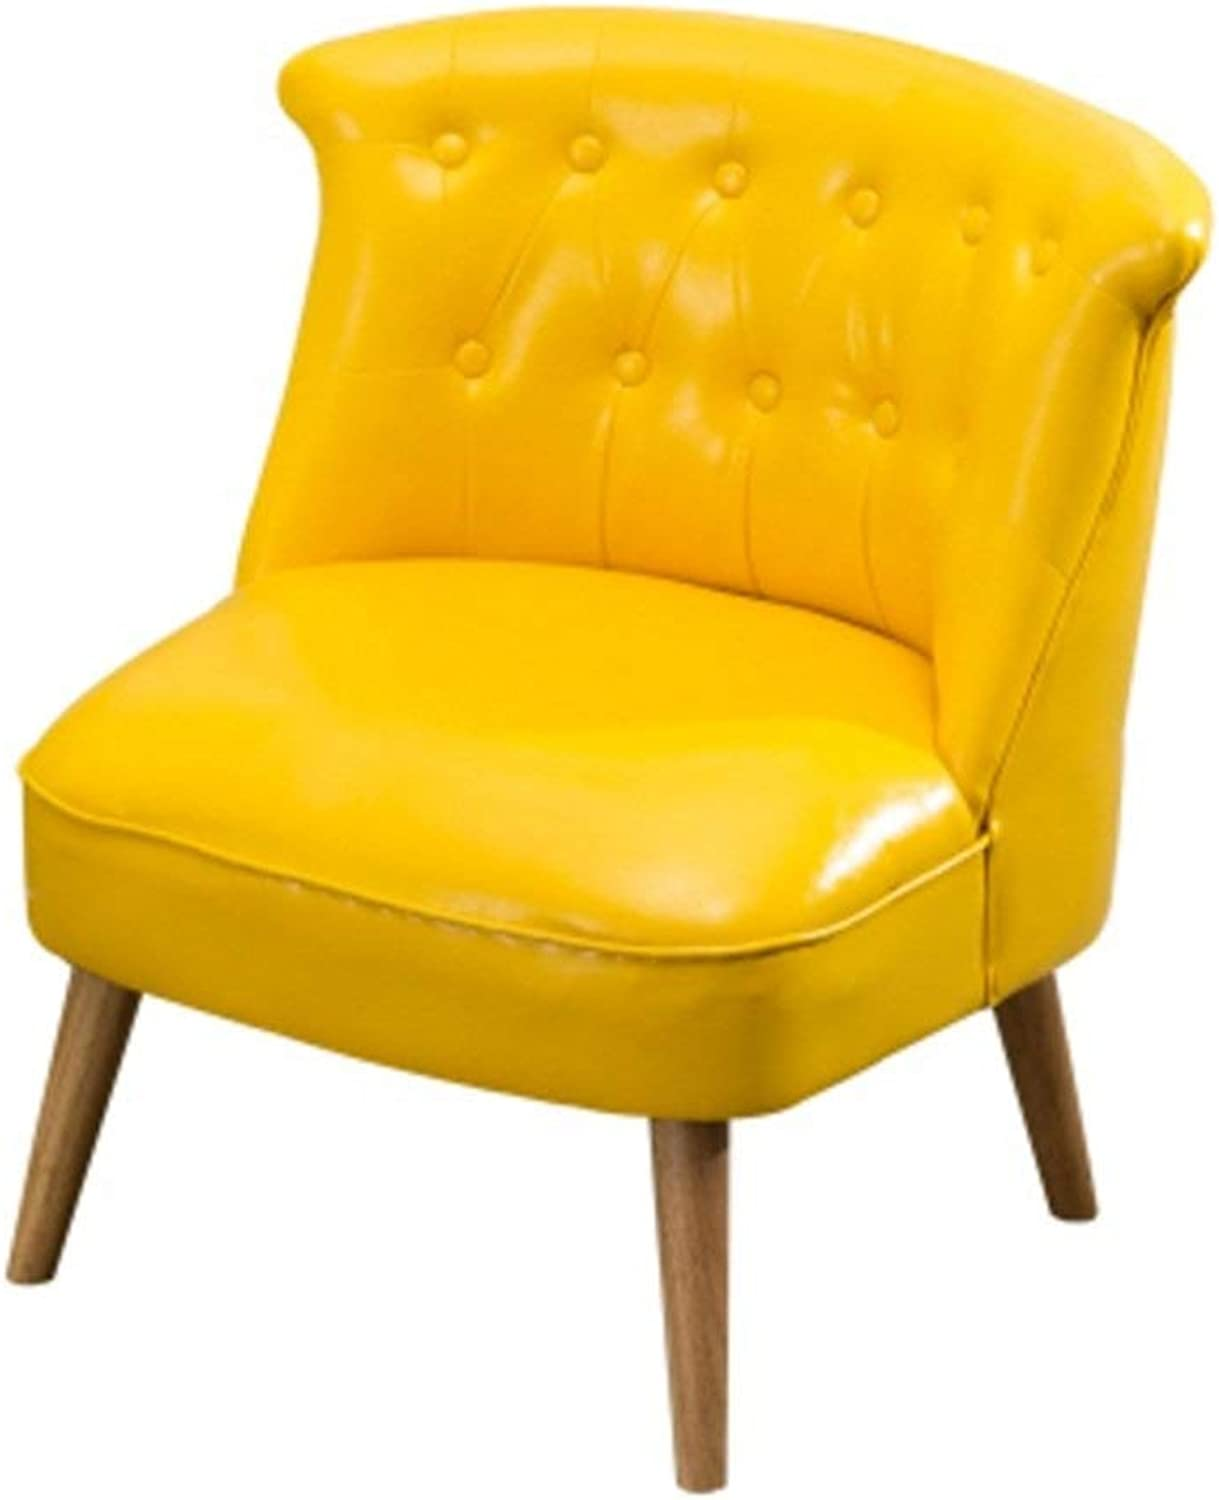 Leather SofaLiving Room Leisure Seat High Rebound Sponge Pad Lazy Sofa Bench Leg Detachable Removable and Washable Portable Seat Floor Chair